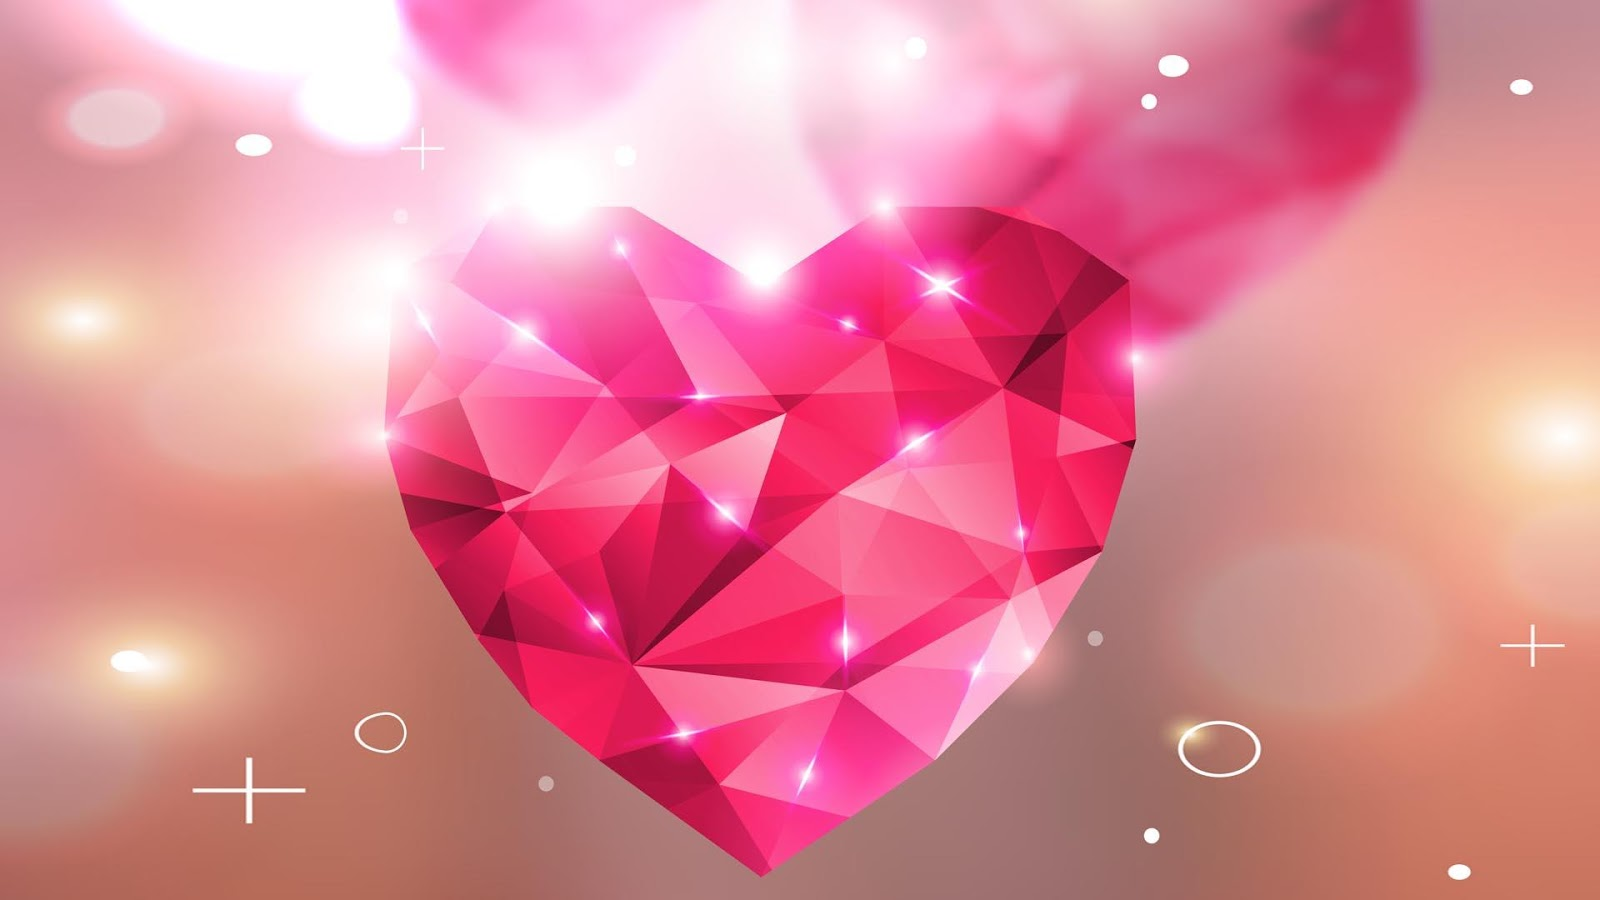 Beautiful Love Heart Wallpaper HD Pics One HD Wallpaper 1600x900